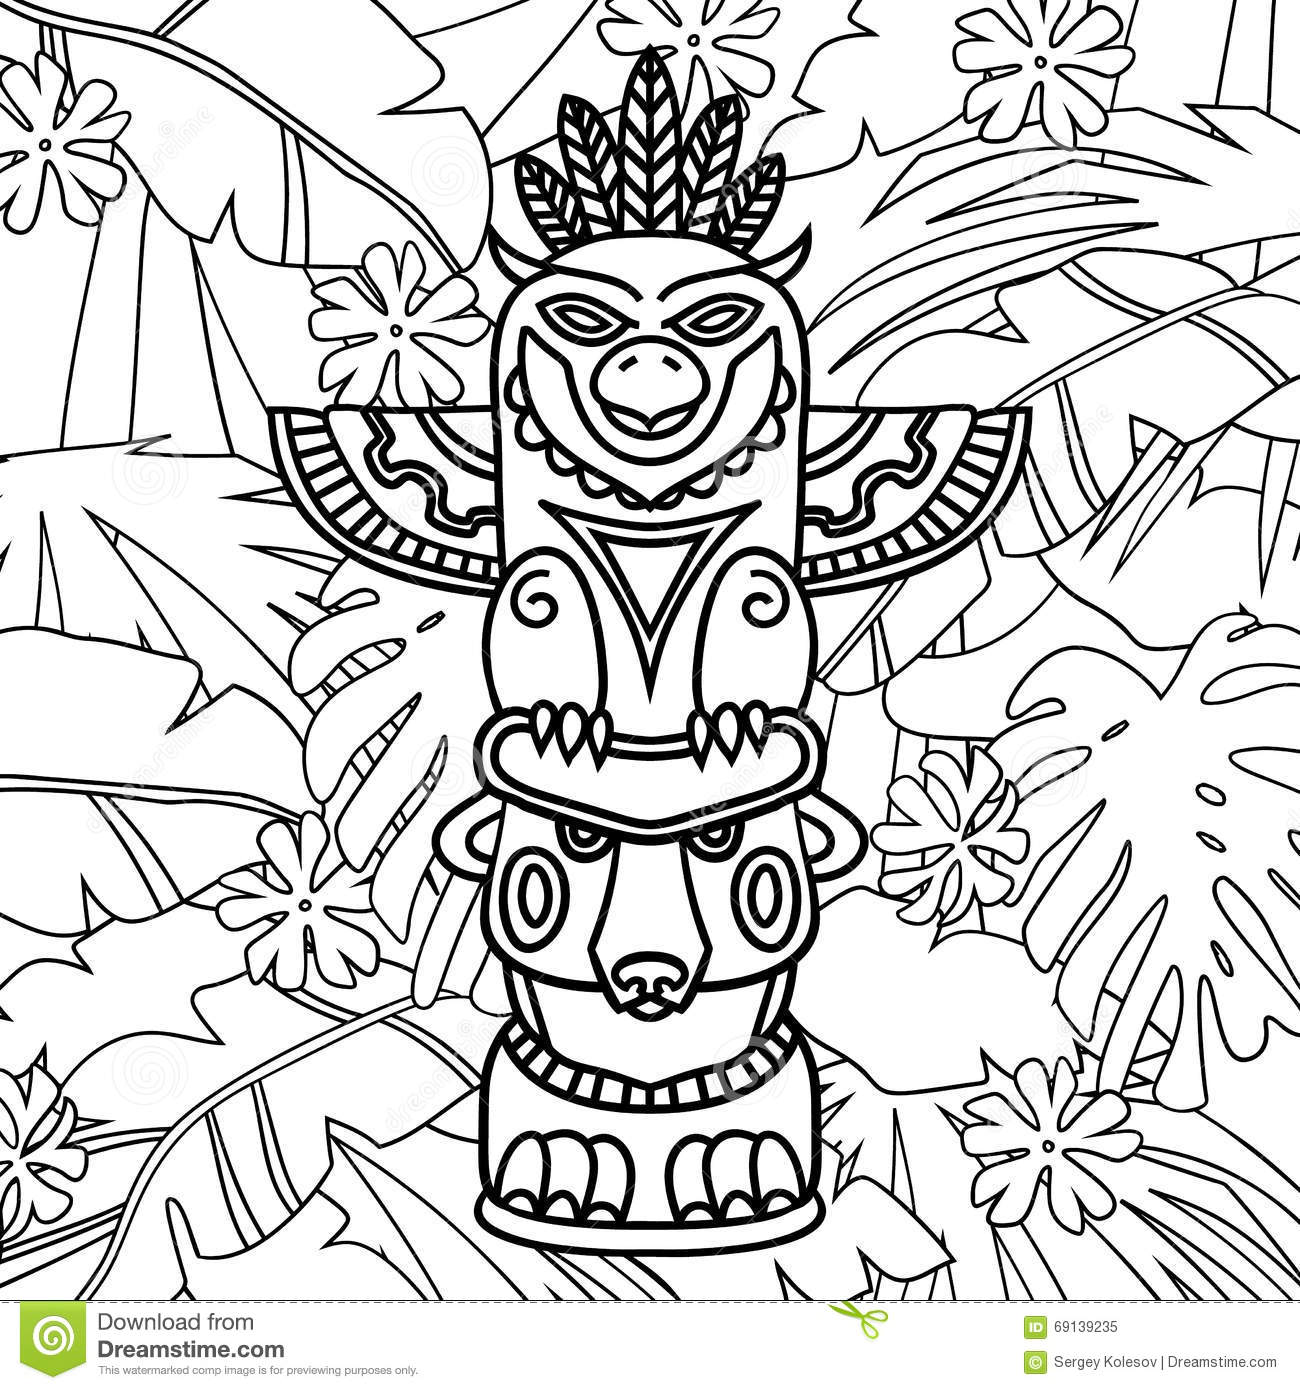 Printable Totem Pole Worksheet